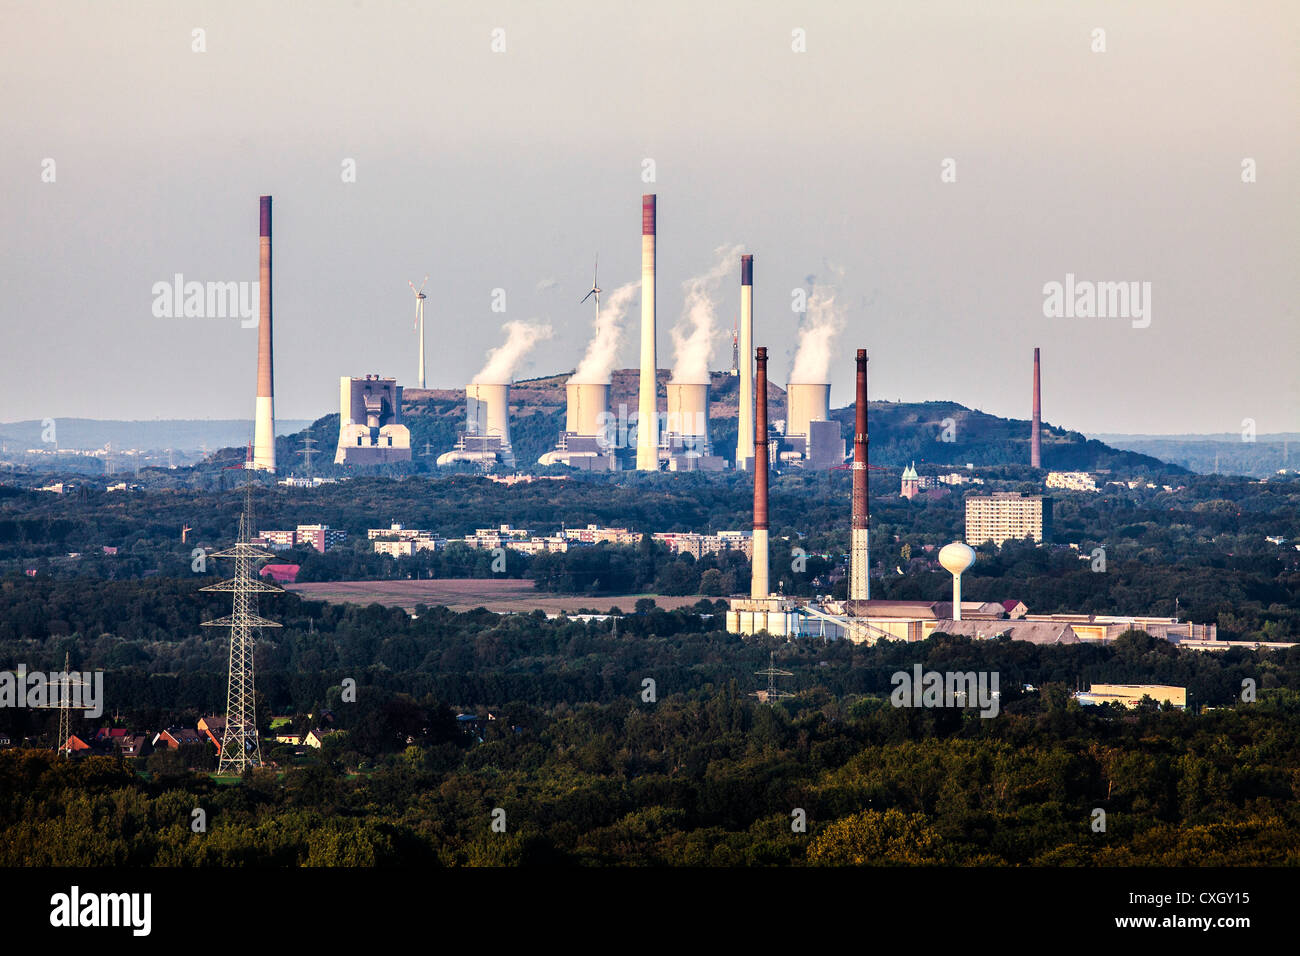 EON coal power station 'Scholven', wind power station on a stock pile. Gelsenkirchen, Germany, Europe - Stock Image